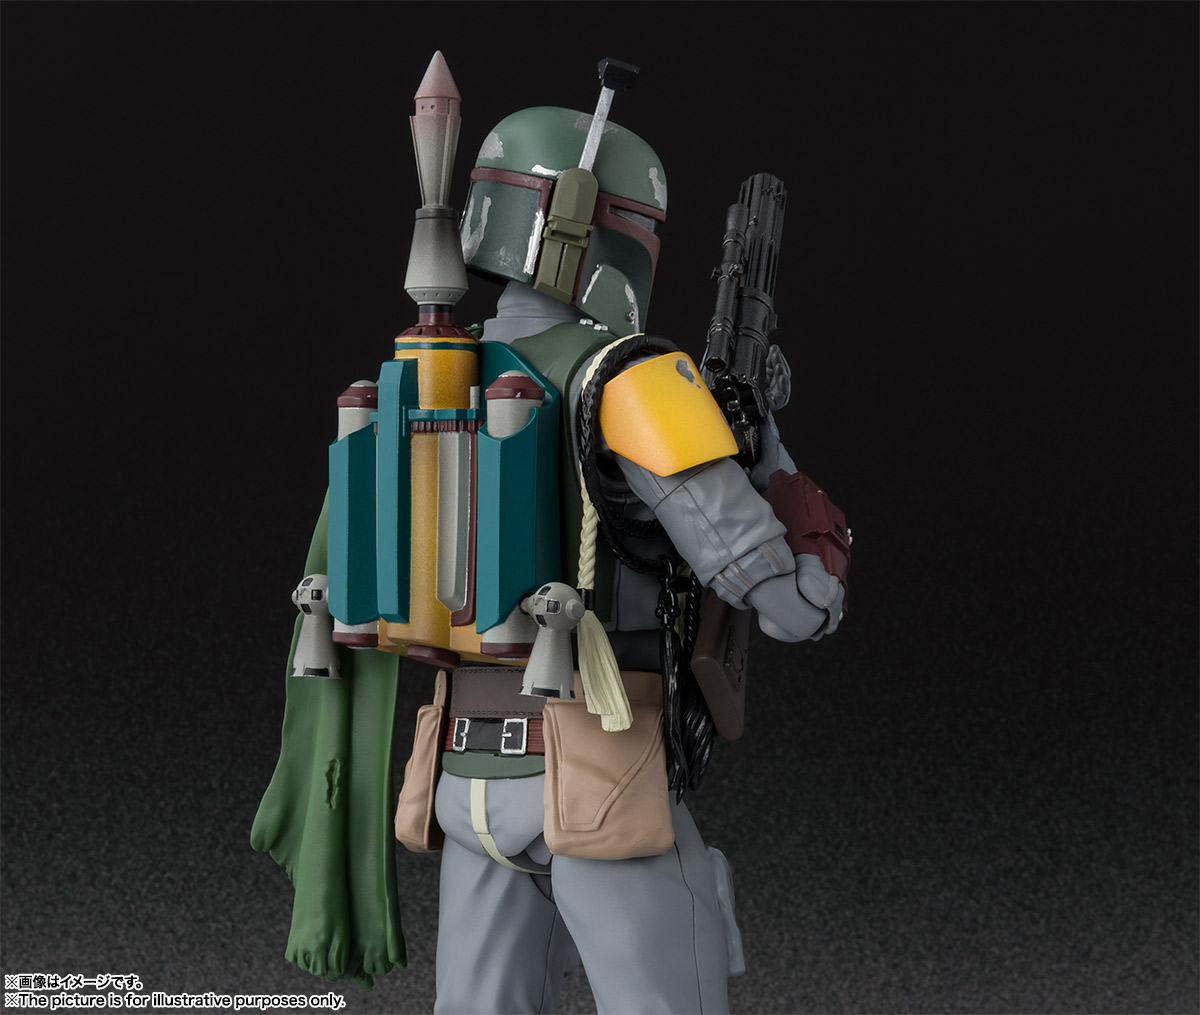 S.H.Figuarts ボバ・フェット(STAR WARS:Episode VI - Return of the Jedi) 07